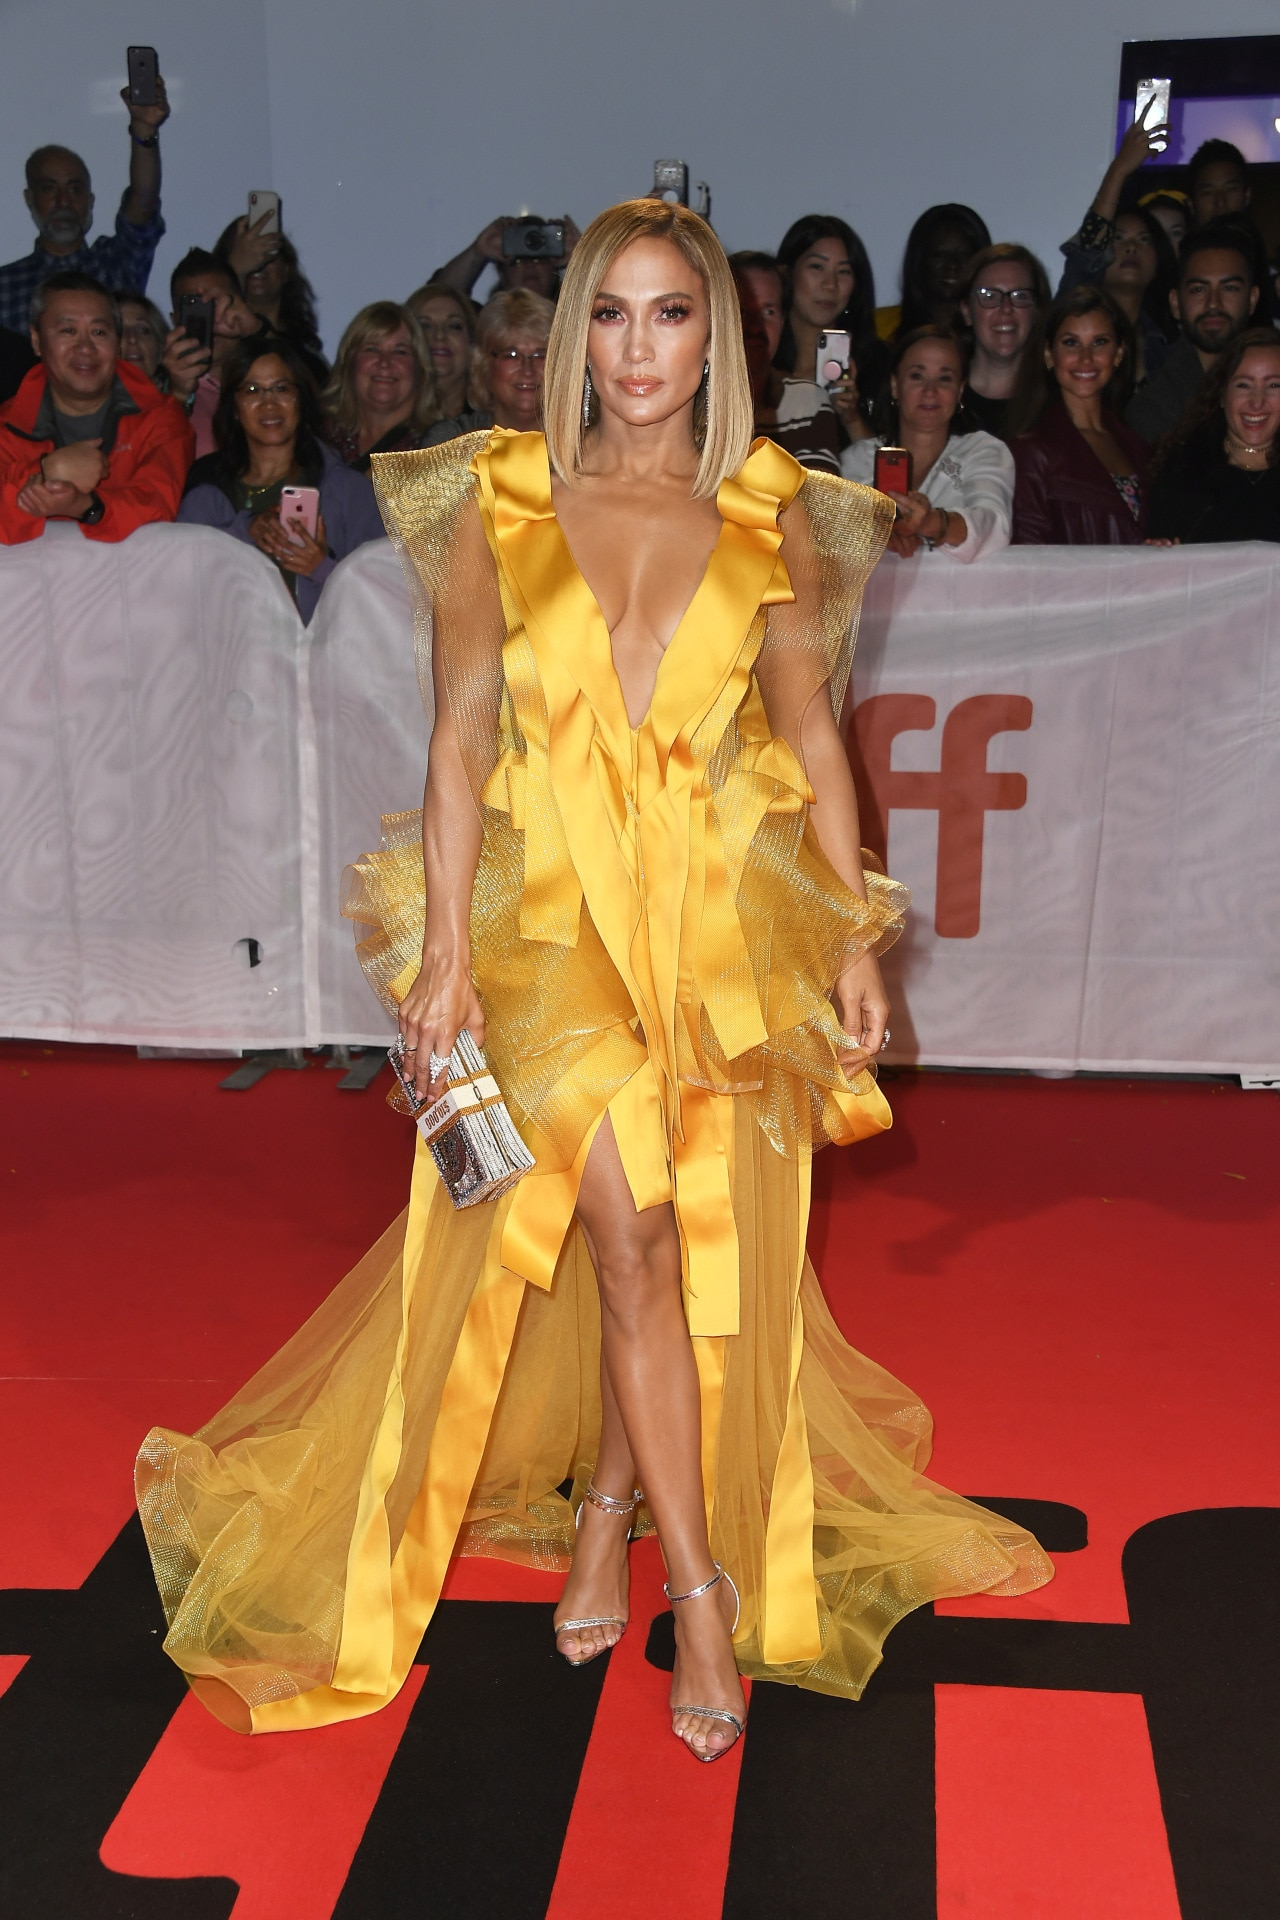 The major red carpet looks from the 2019 Toronto International Film Festival